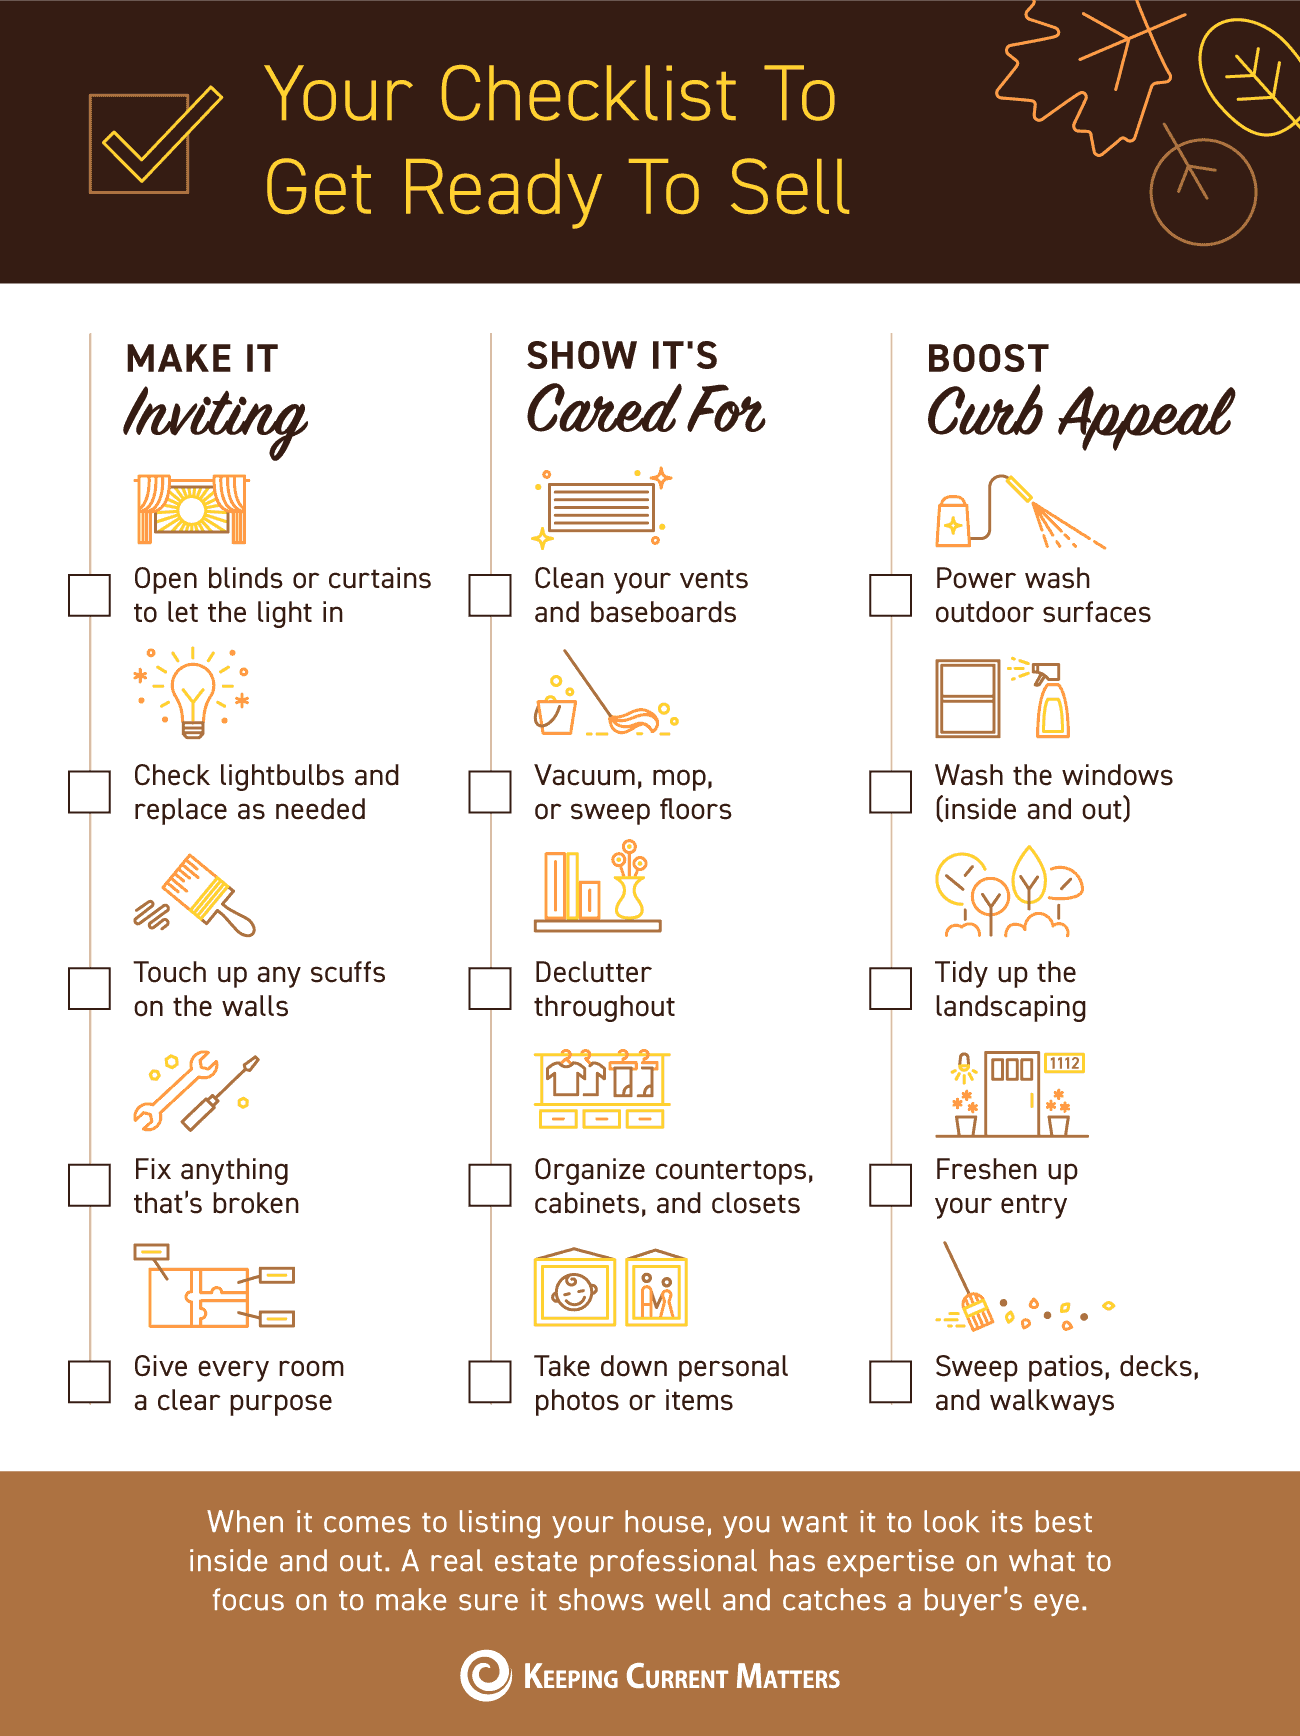 Your Checklist To Get Ready To Sell [INFOGRAPHIC]   Keeping Current Matters